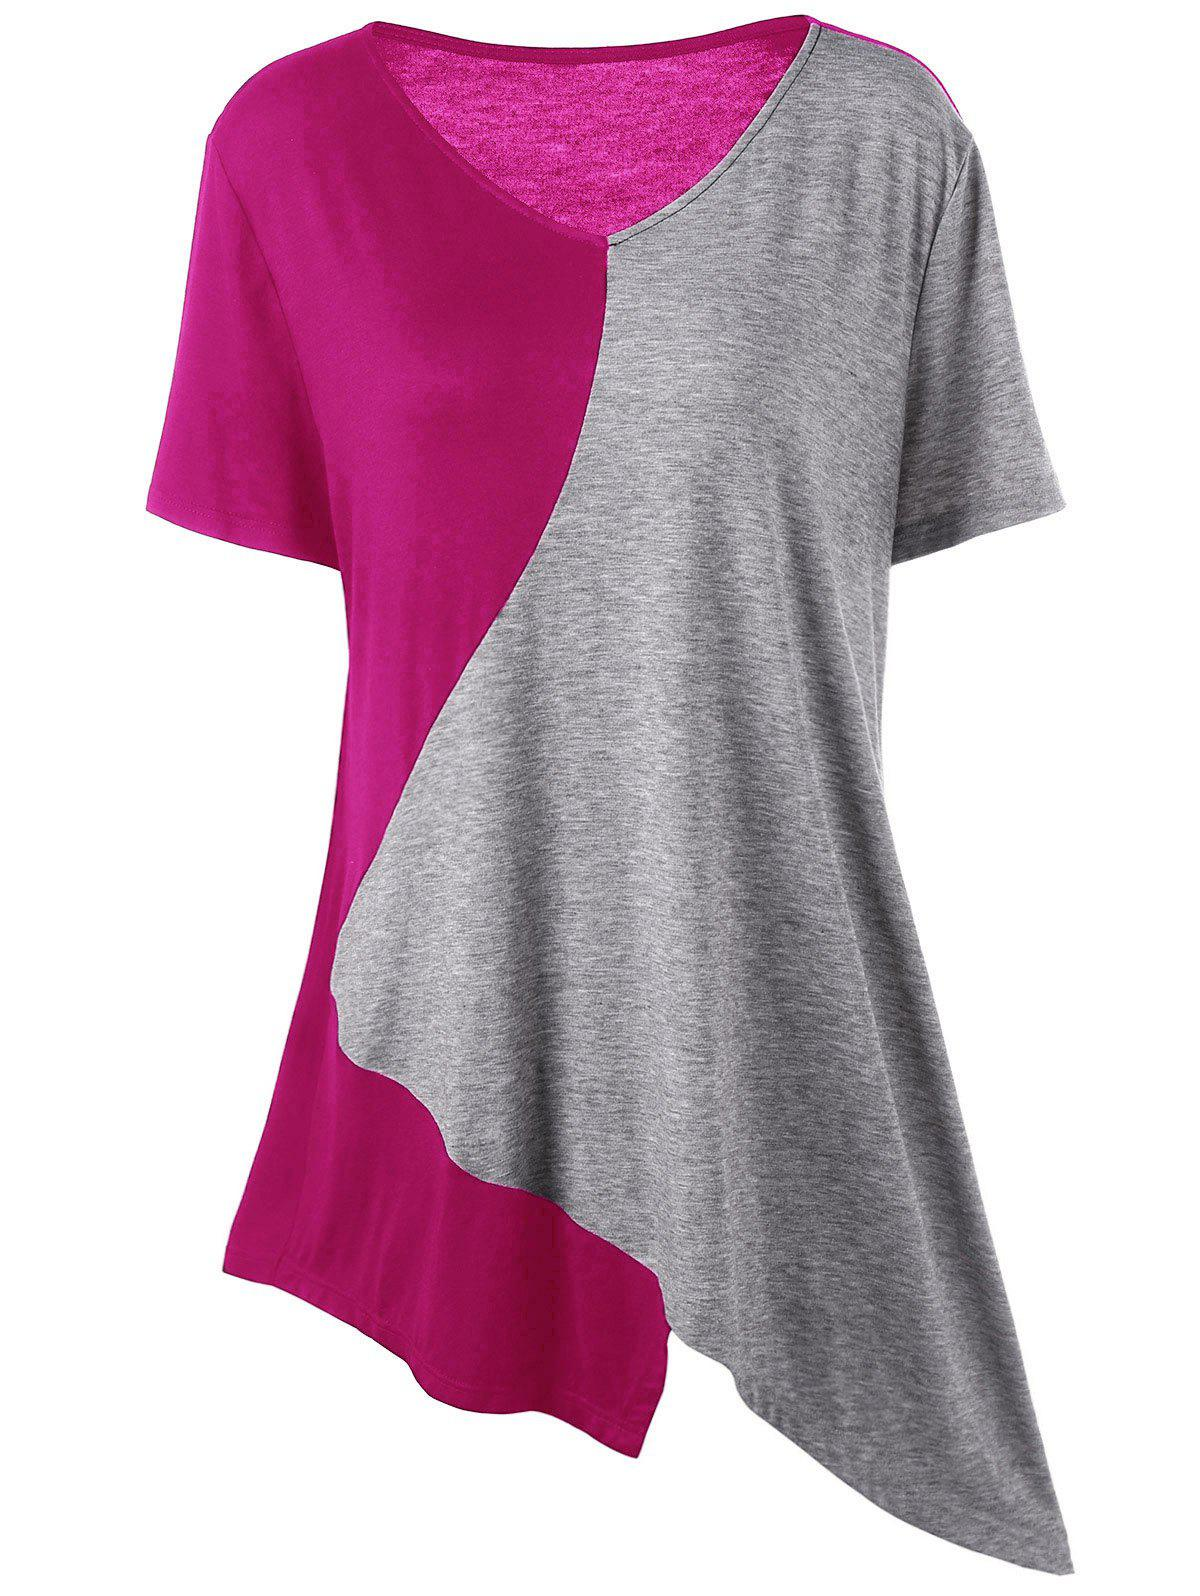 Asymmetrical Color Block Plus Size Long T-ShirtWOMEN<br><br>Size: 2XL; Color: GRAY AND RED; Material: Cotton,Spandex; Shirt Length: Long; Sleeve Length: Short; Collar: V-Neck; Style: Casual; Season: Summer; Pattern Type: Others; Weight: 0.2000kg; Package Contents: 1 x T-Shirt;